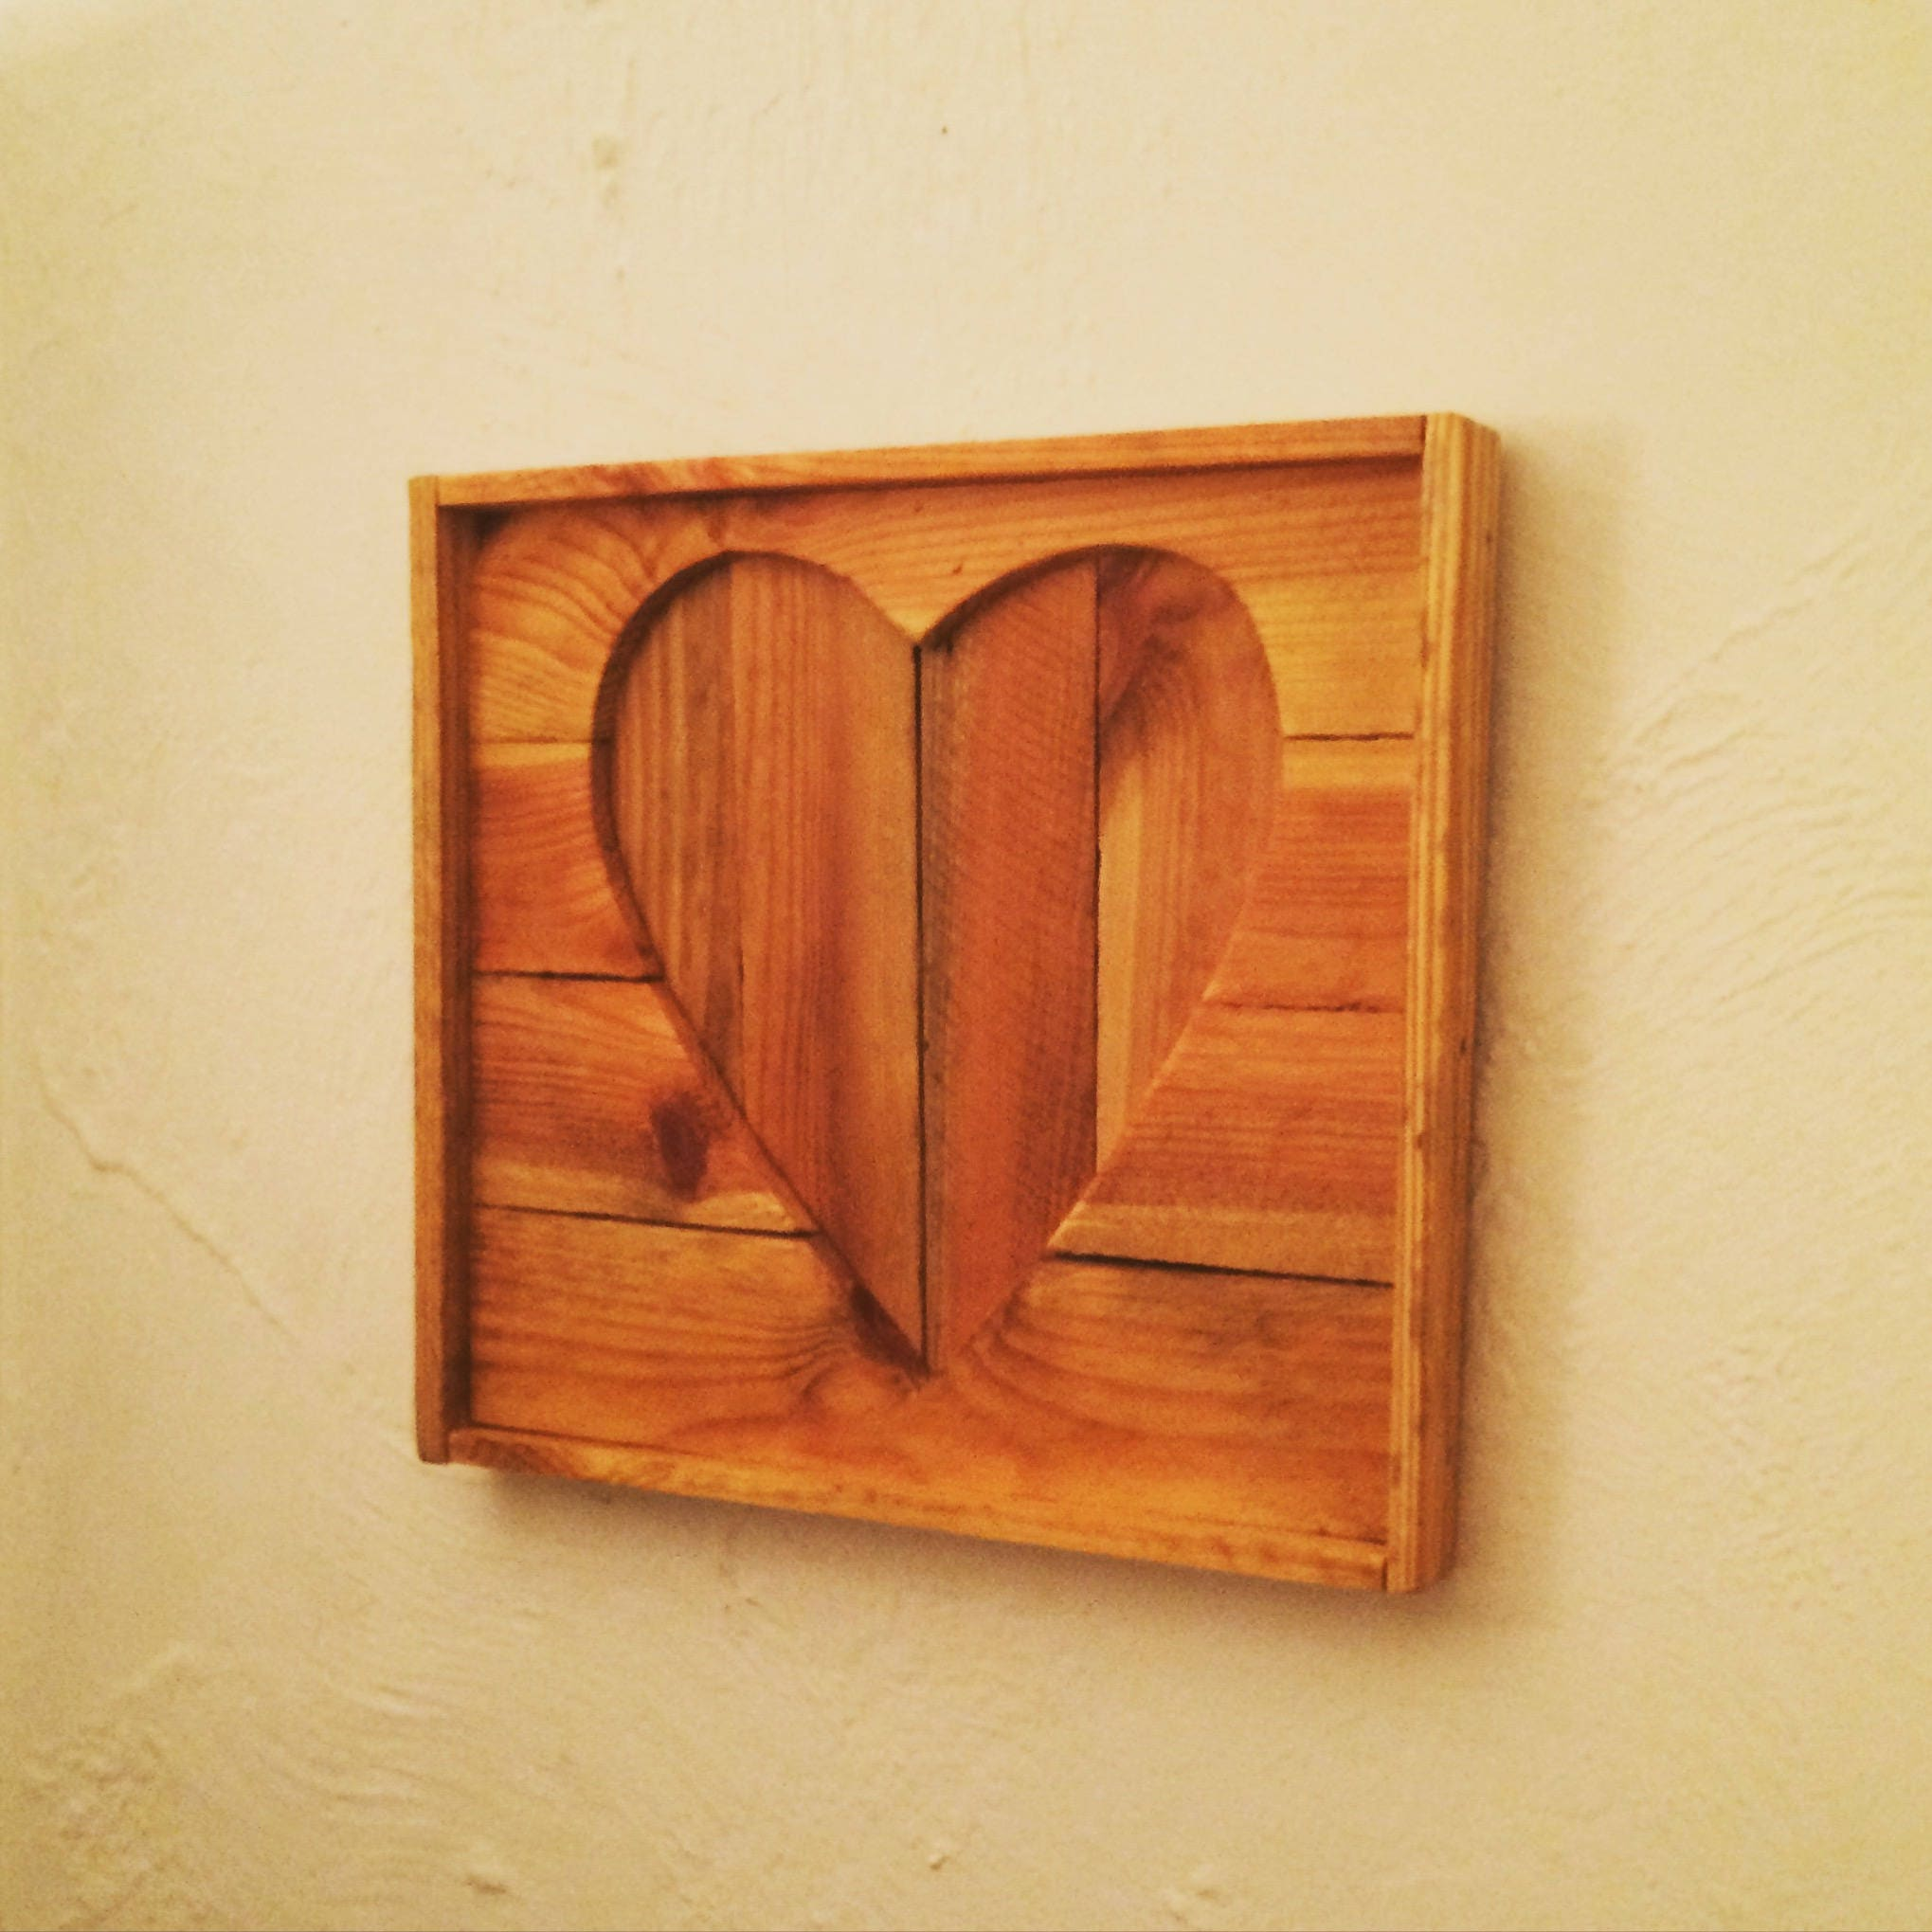 Rustic reclaimed wooden heart wall hanging  outline cutout picture  home decor  apple crate wood